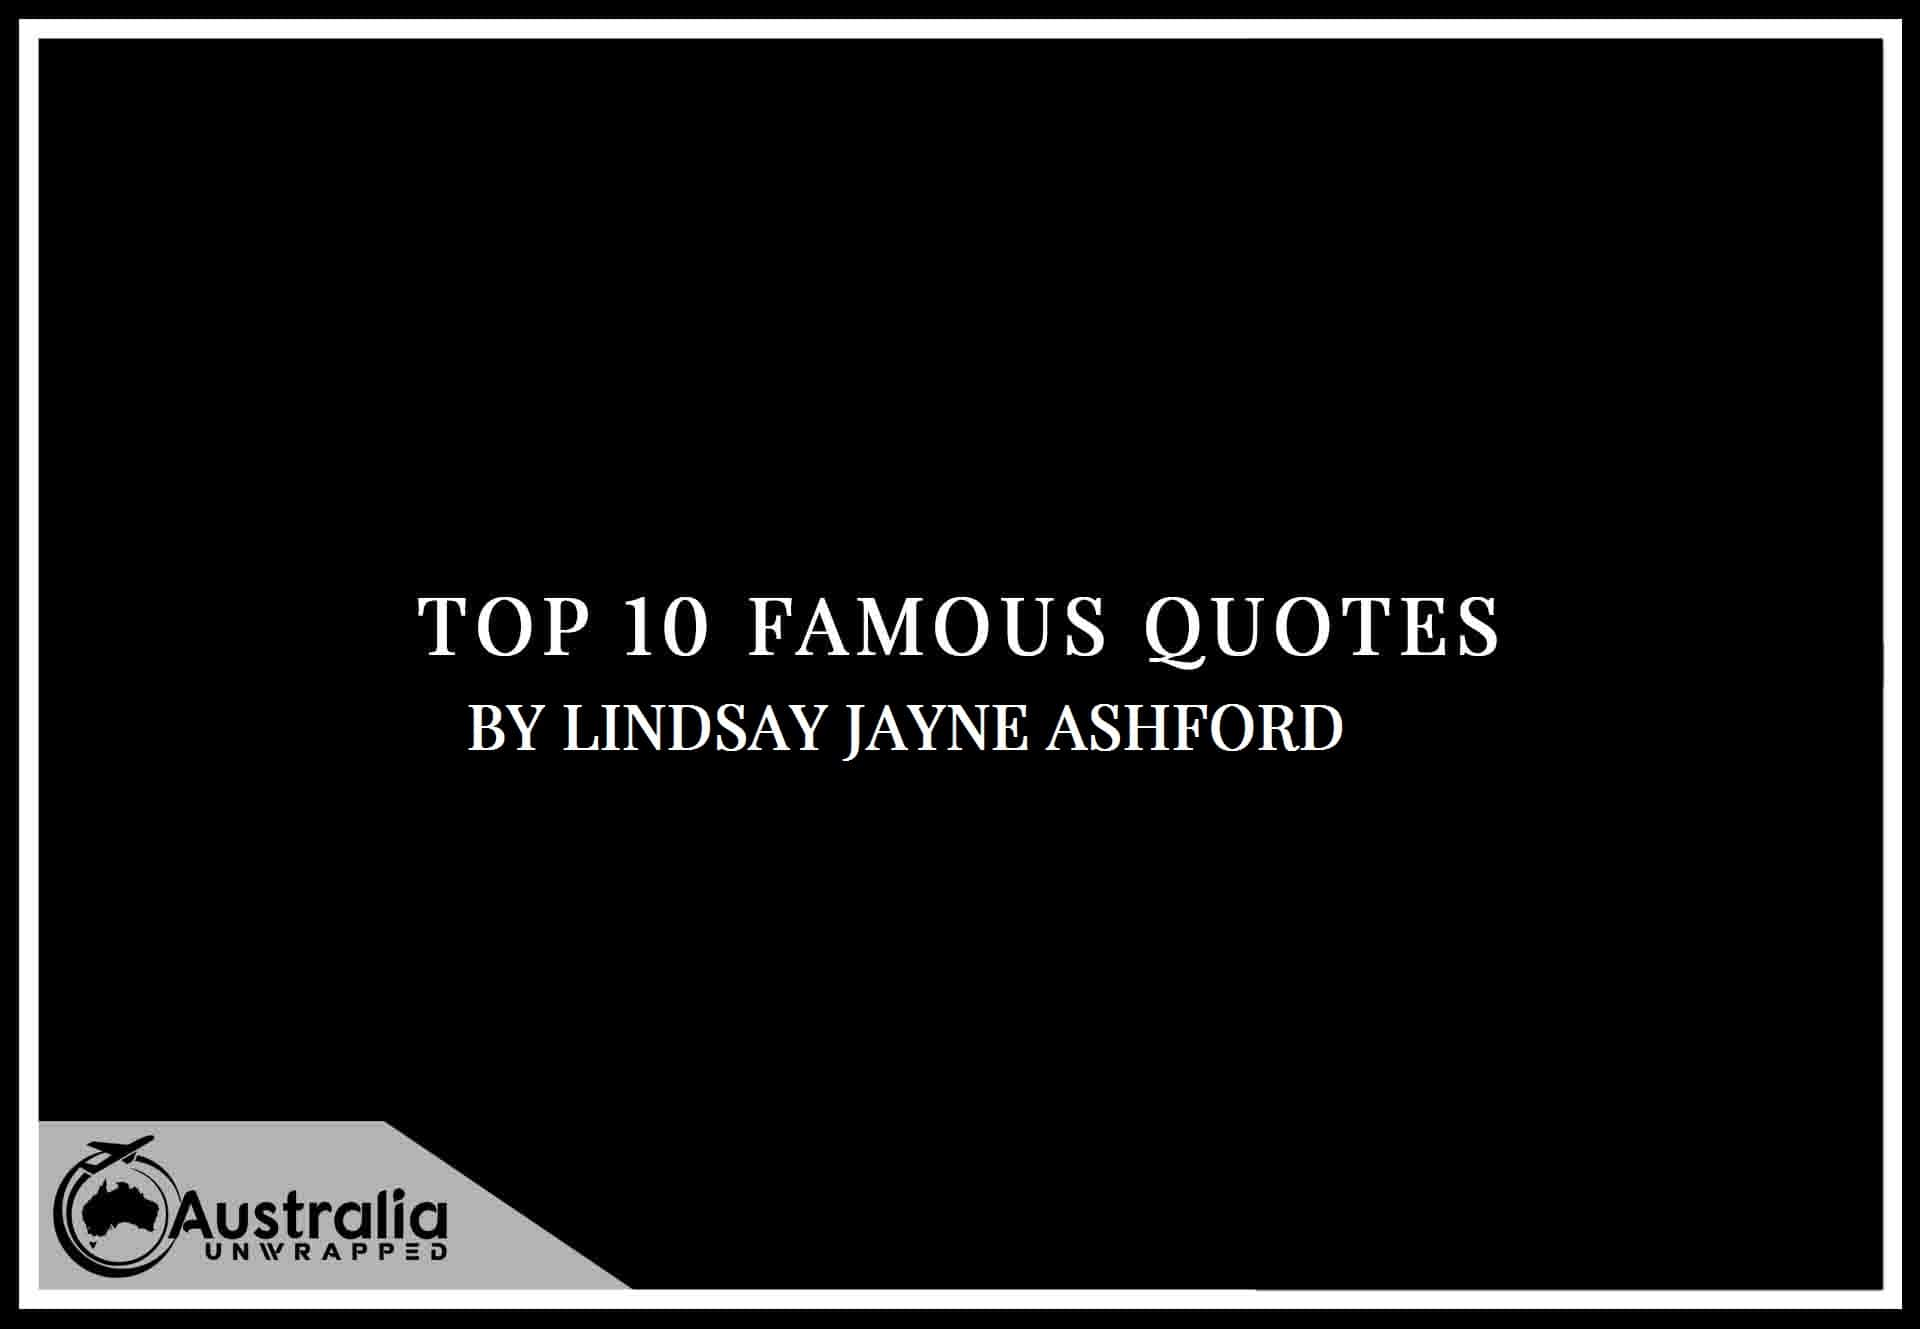 Lindsay Jayne Ashford's Top 10 Popular and Famous Quotes